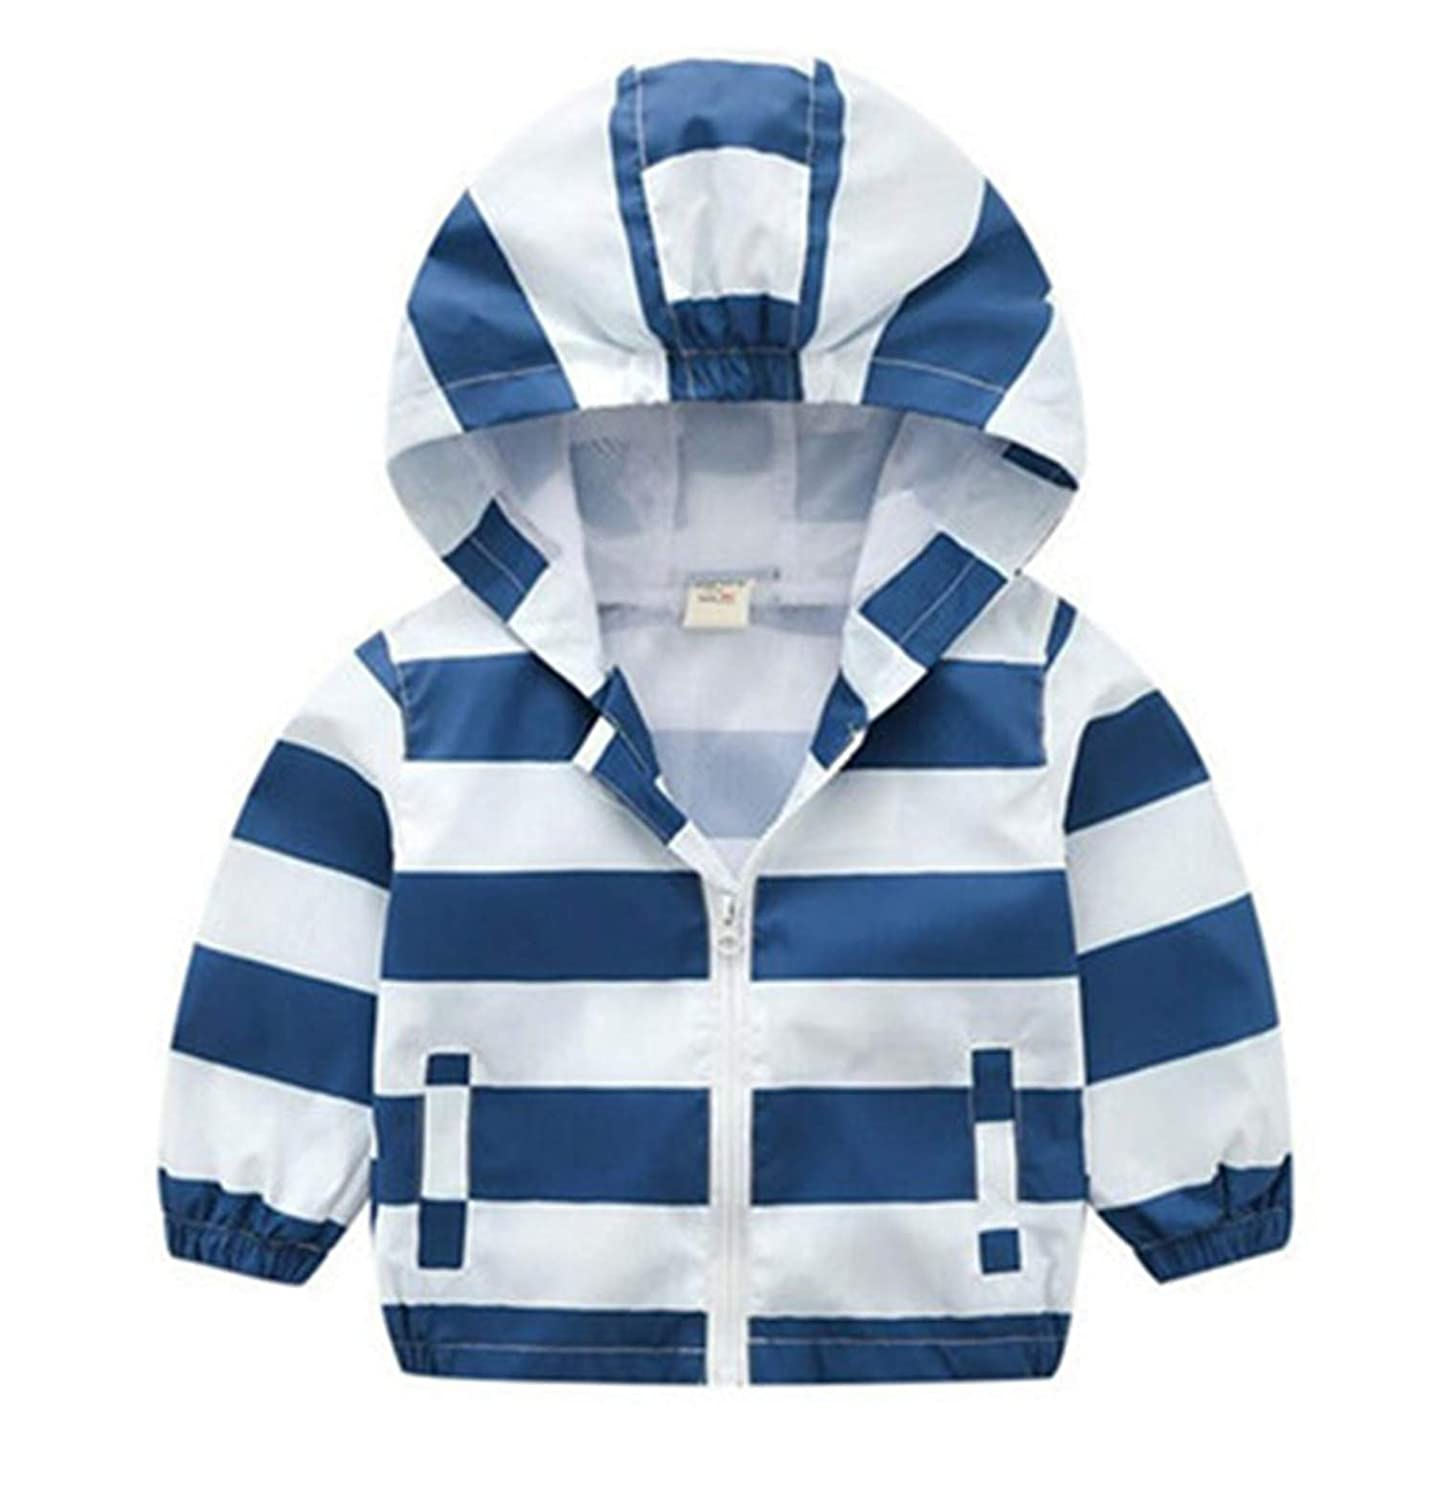 Melissa Wilde 80-130cm Fashion Stripe Jacket for Girls Windbreaker Boys Coat Kids Outerwear